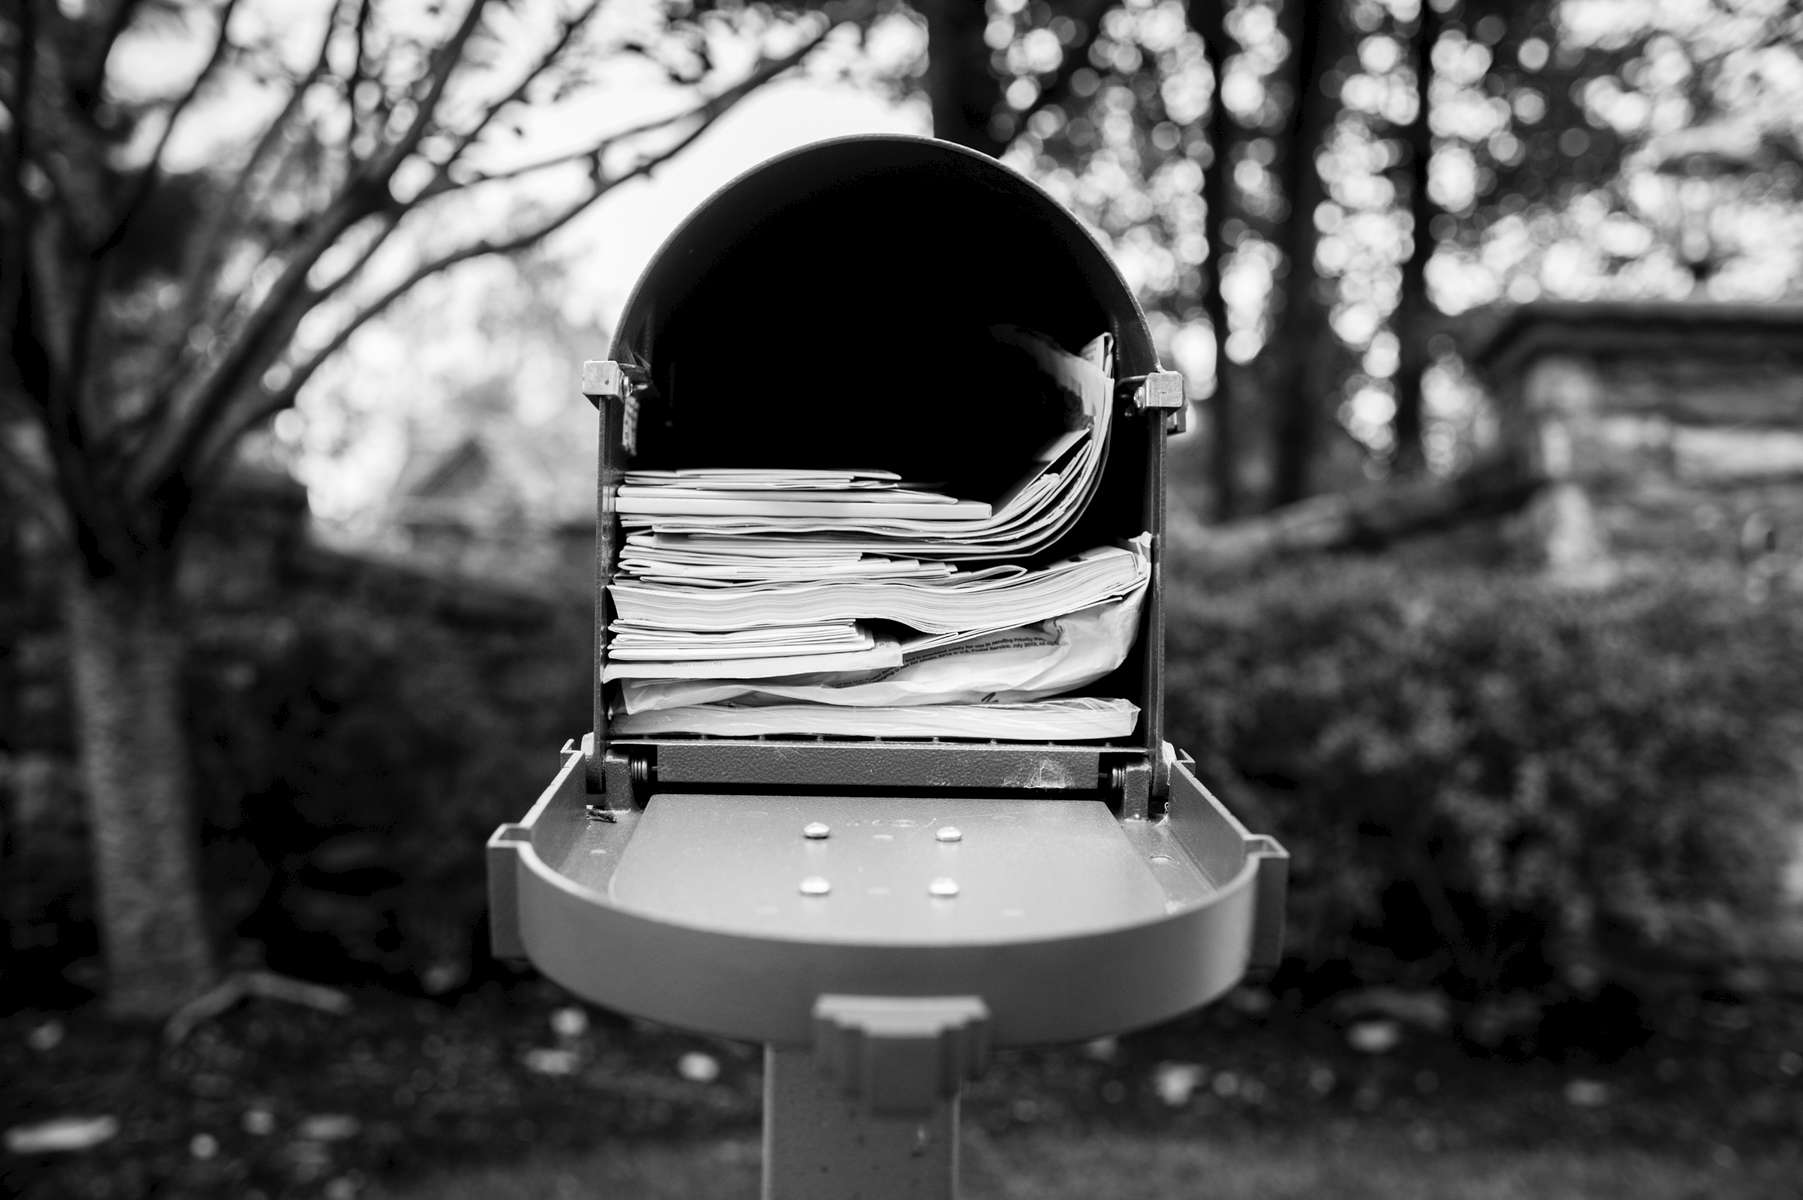 Like clockwork, Laurel always picked up the mail. This full mailbox meant that she hadn't checked it in a week, and this was a small sign that her disease was starting to hinder her ability to do her everyday, normal tasks. Chappaqua, NY. October 2014